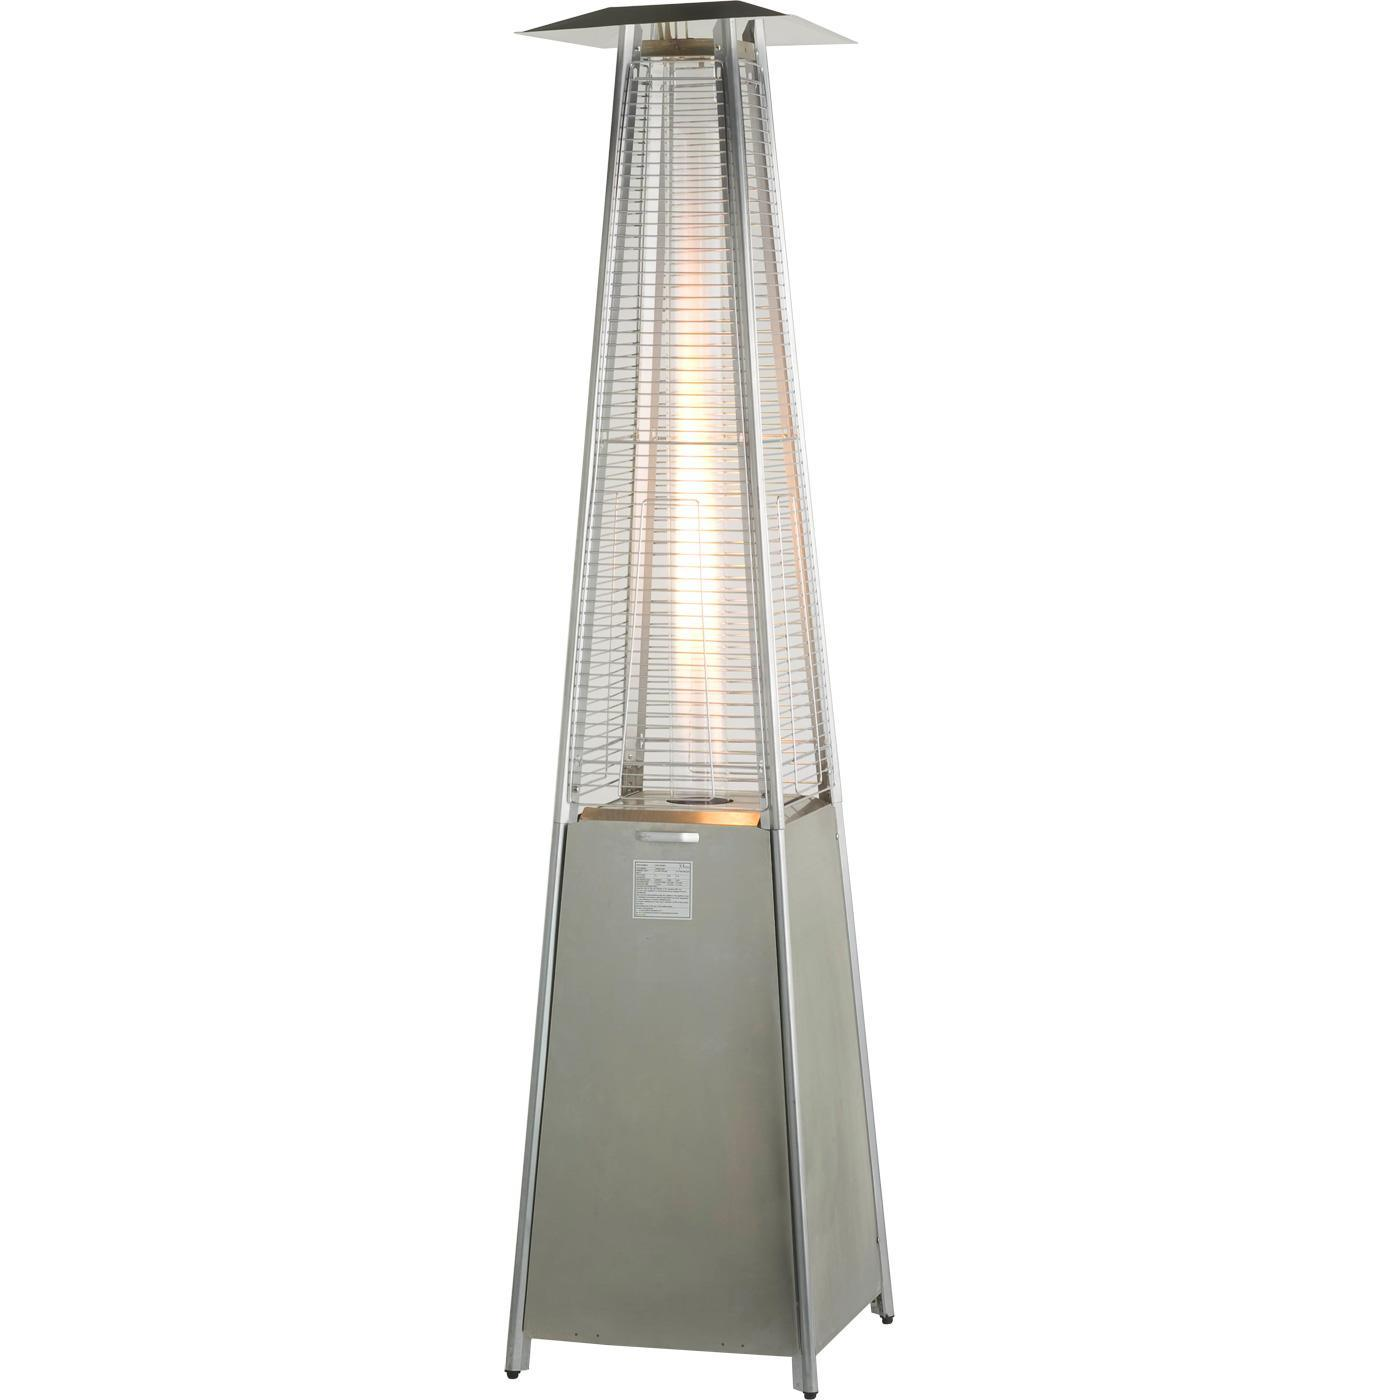 China Portable Pyramid Glass Tube Flame Gas Radiant Tube Patio Heater    China Patio Gas Heaters, Garden Heaters